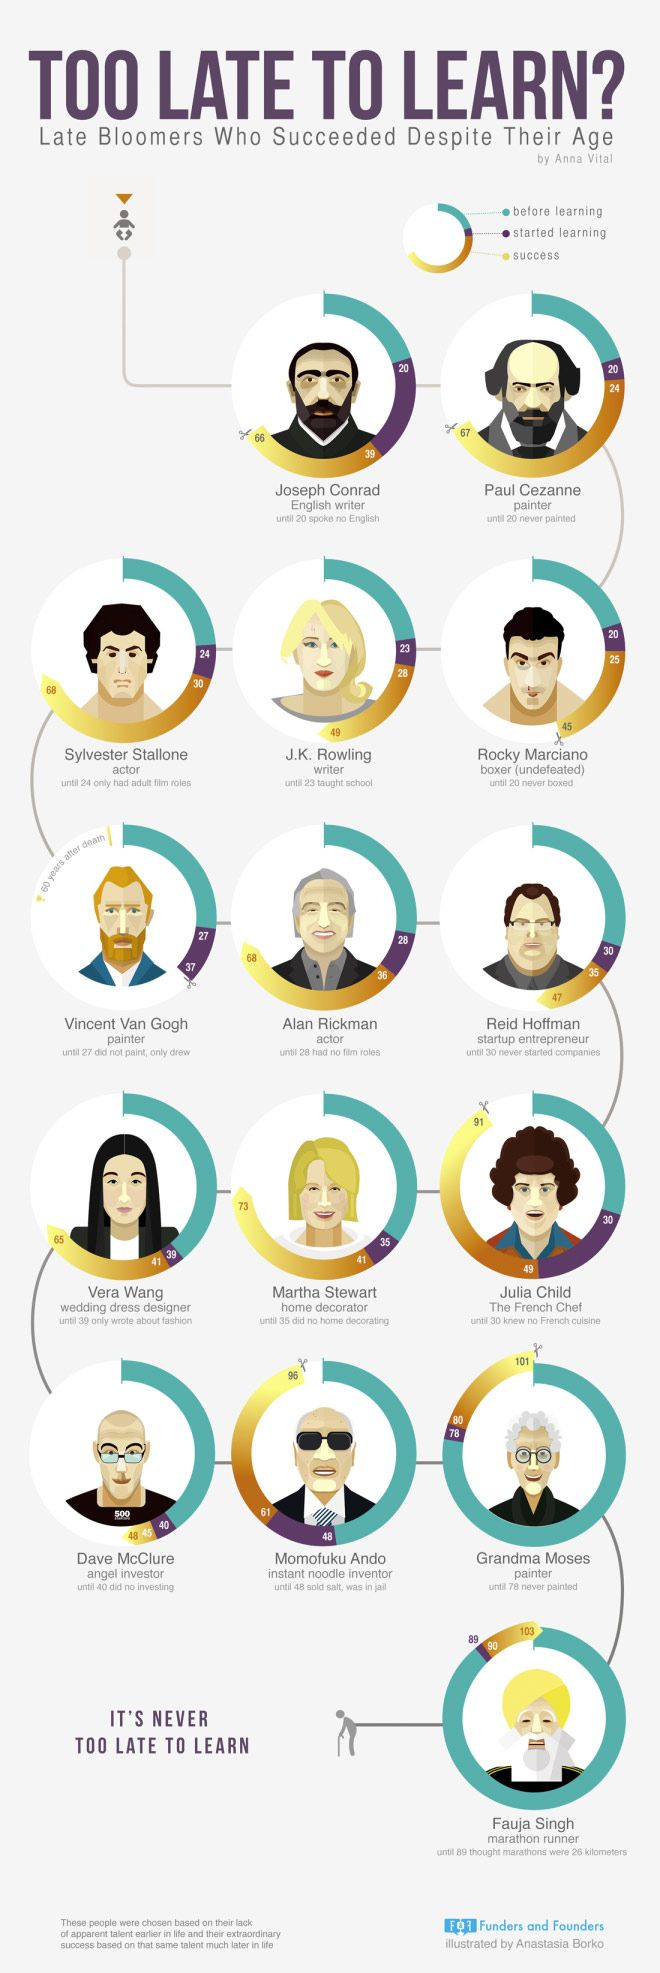 How old is too old start business? [INFOGRAPHIC] #business #age #Infographic